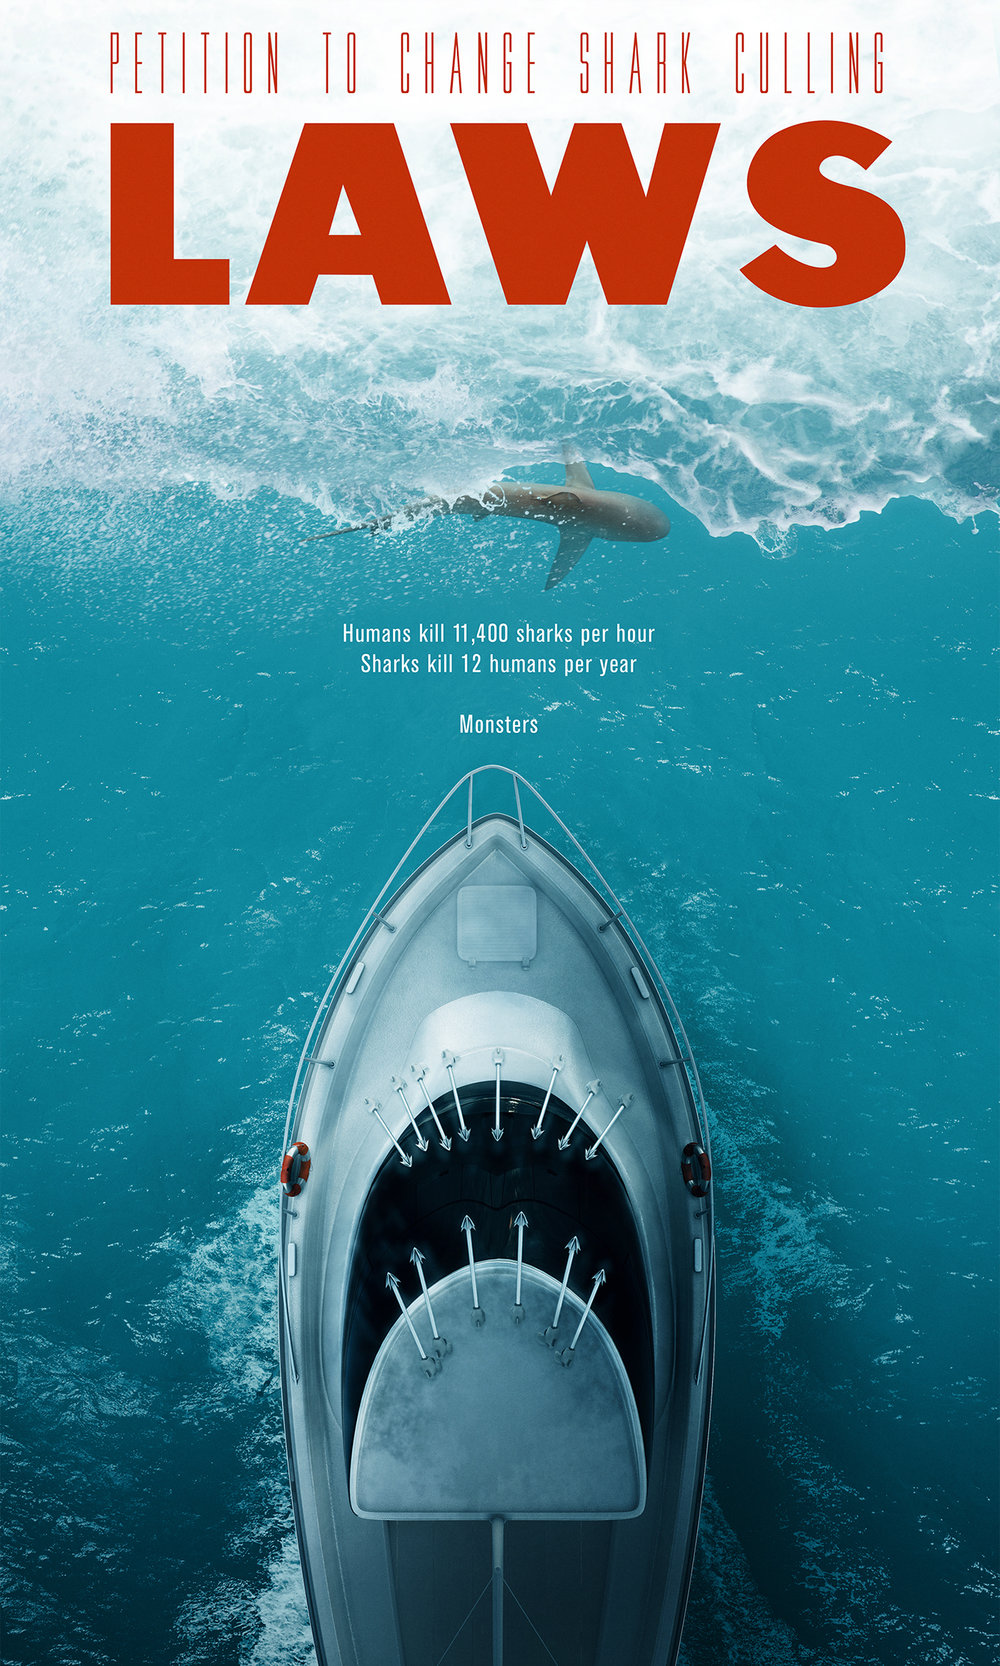 change shark culling laws poster